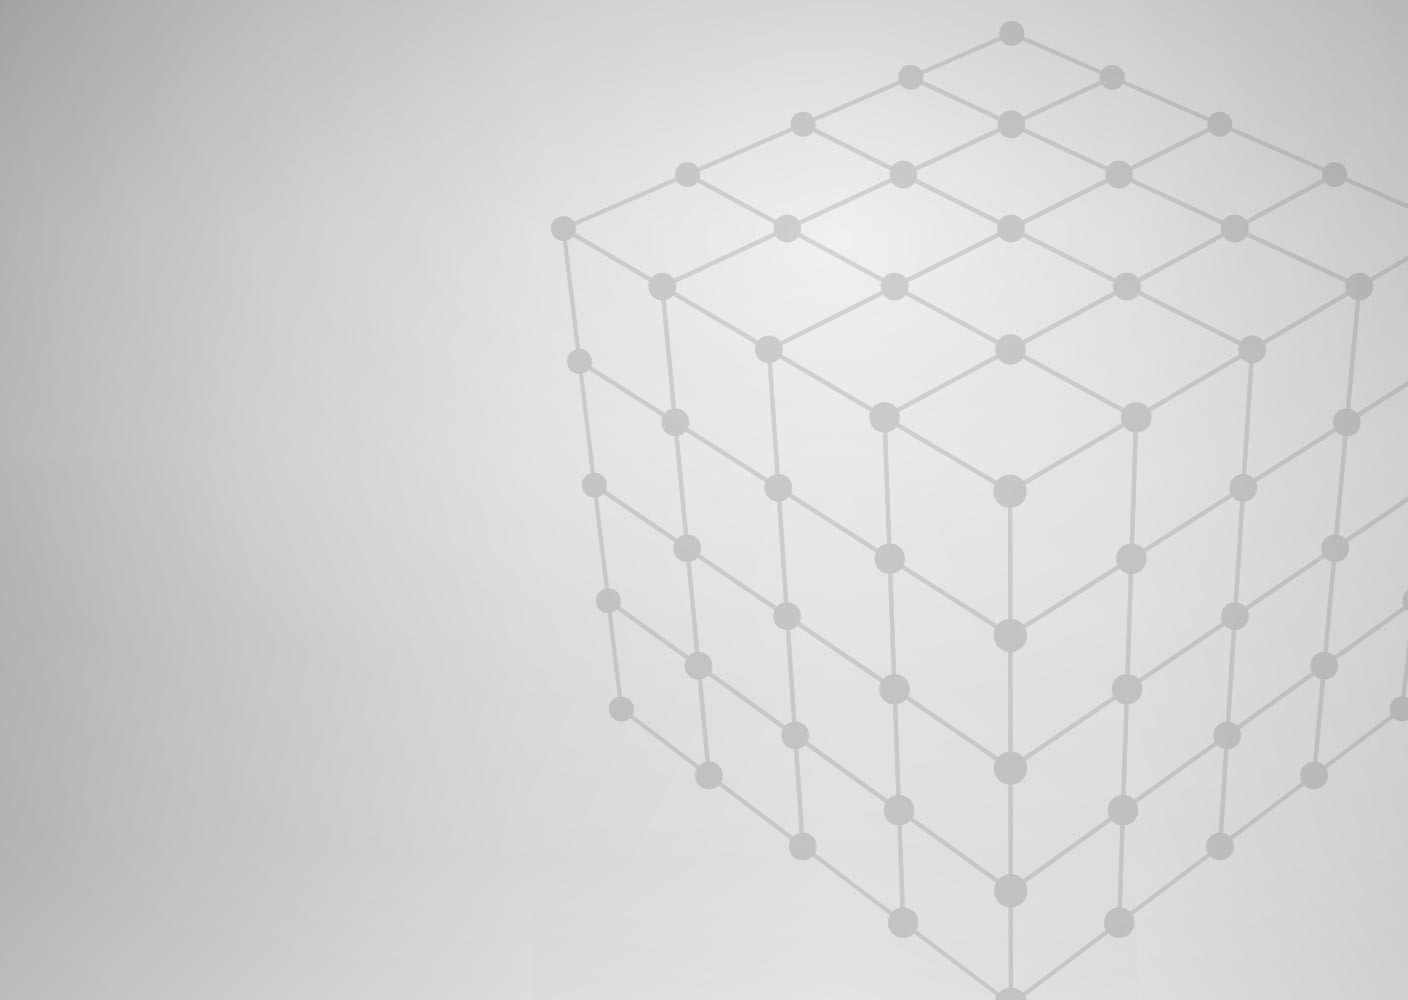 cube-background-e1460490334768-1